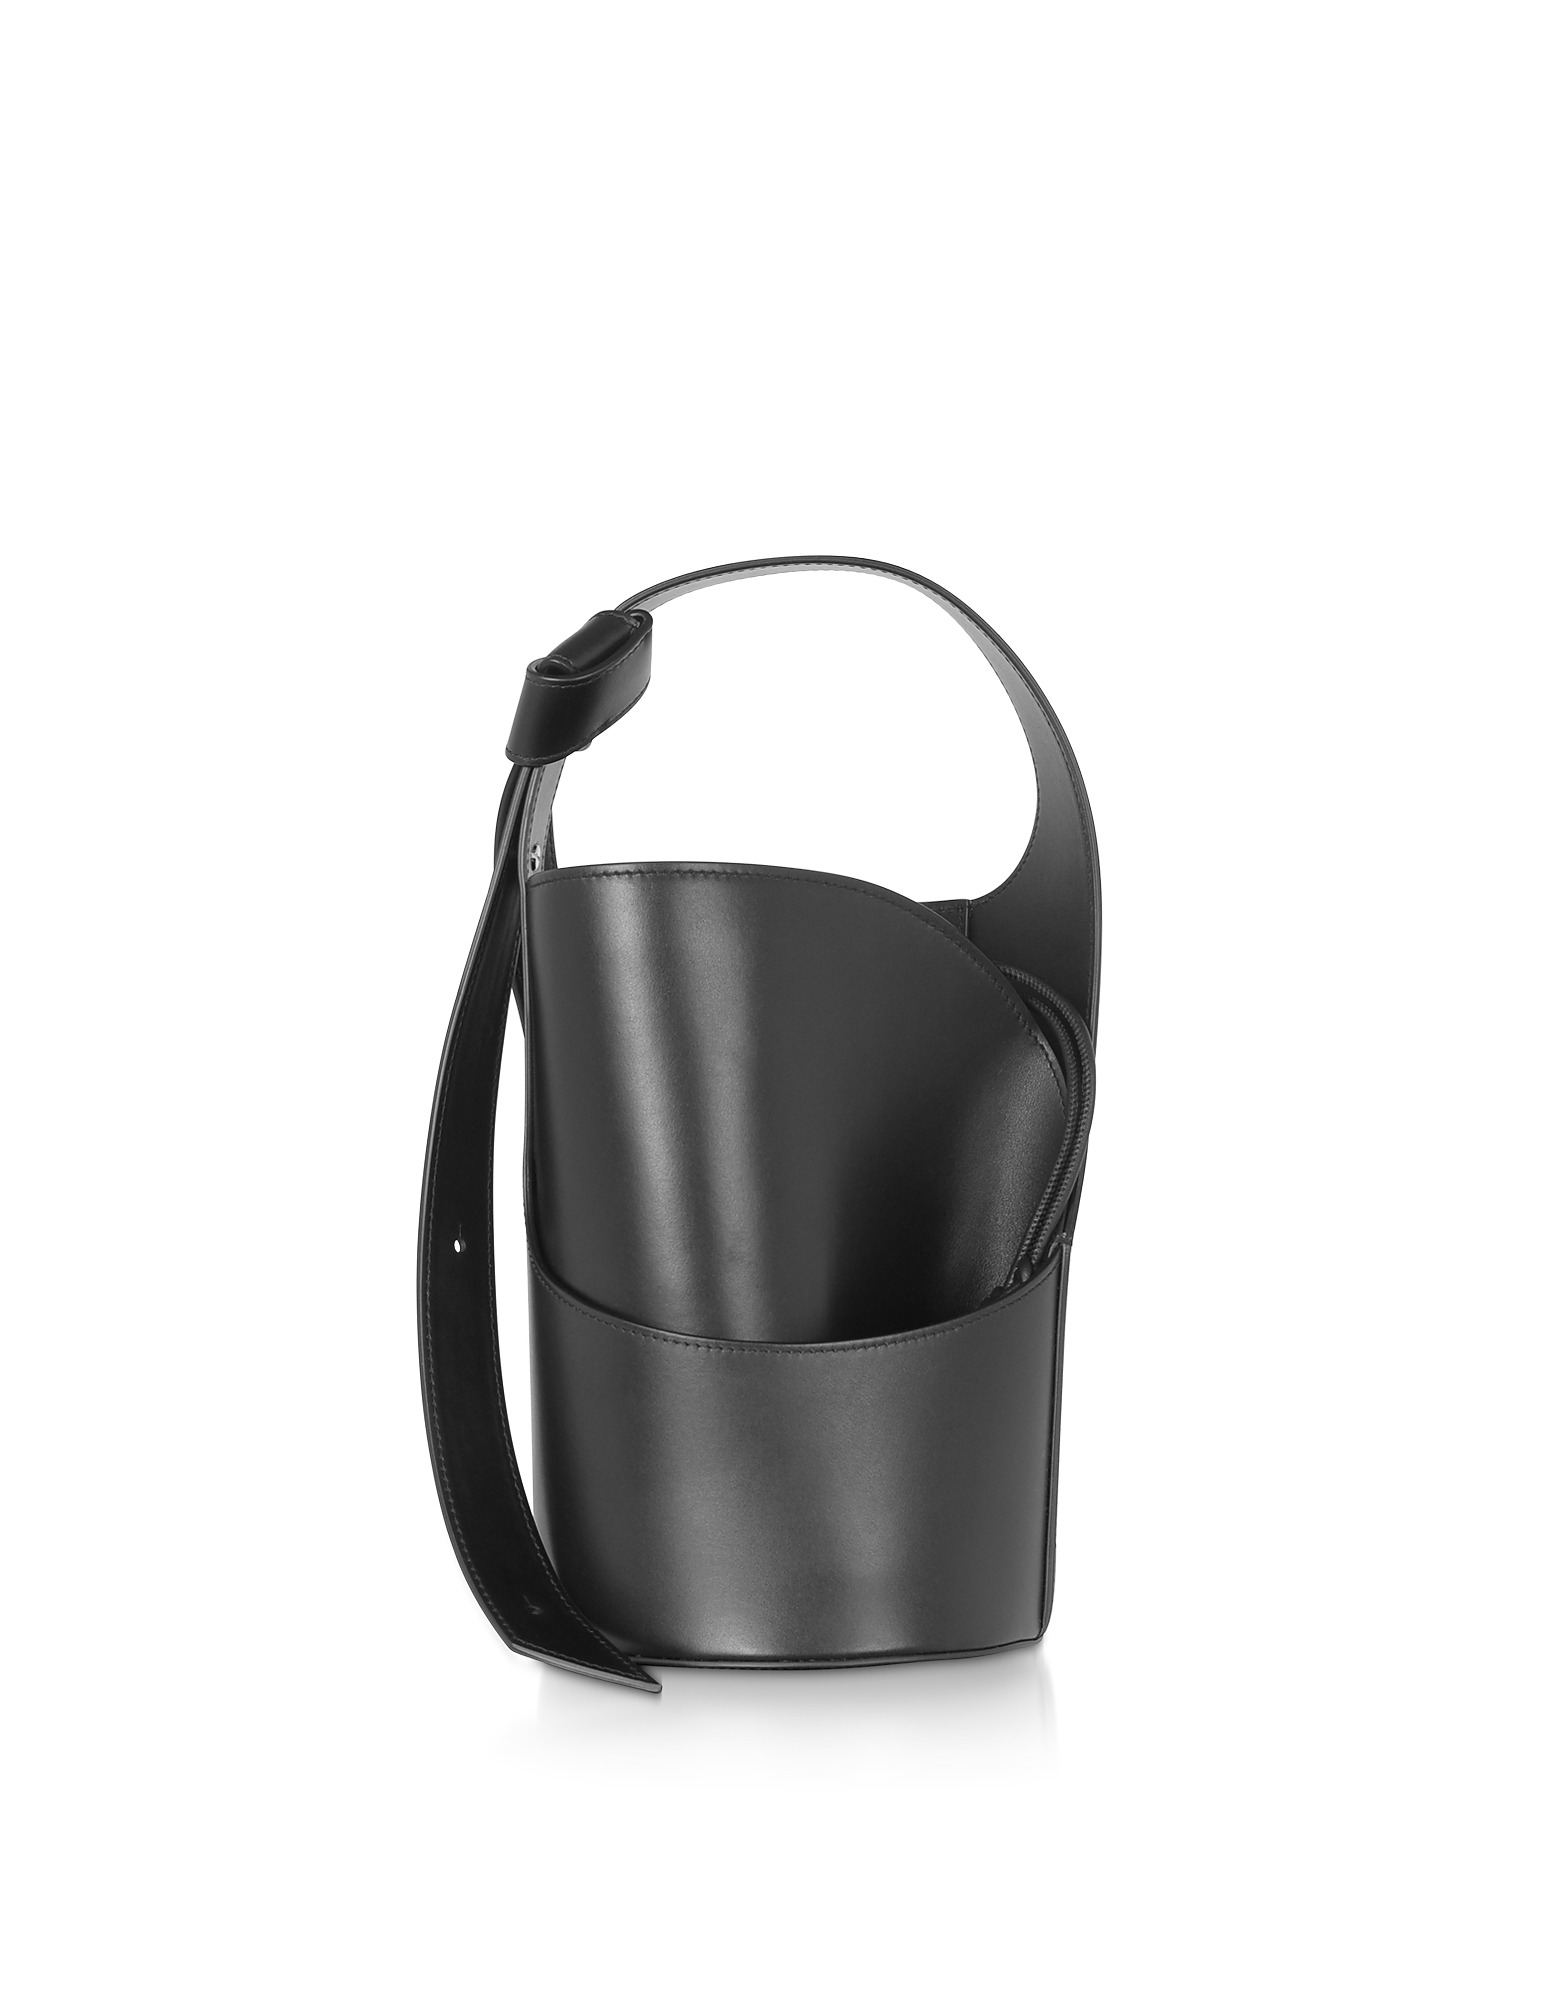 Giaquinto Designer Handbags, Lily Mini Black Bucket Bag